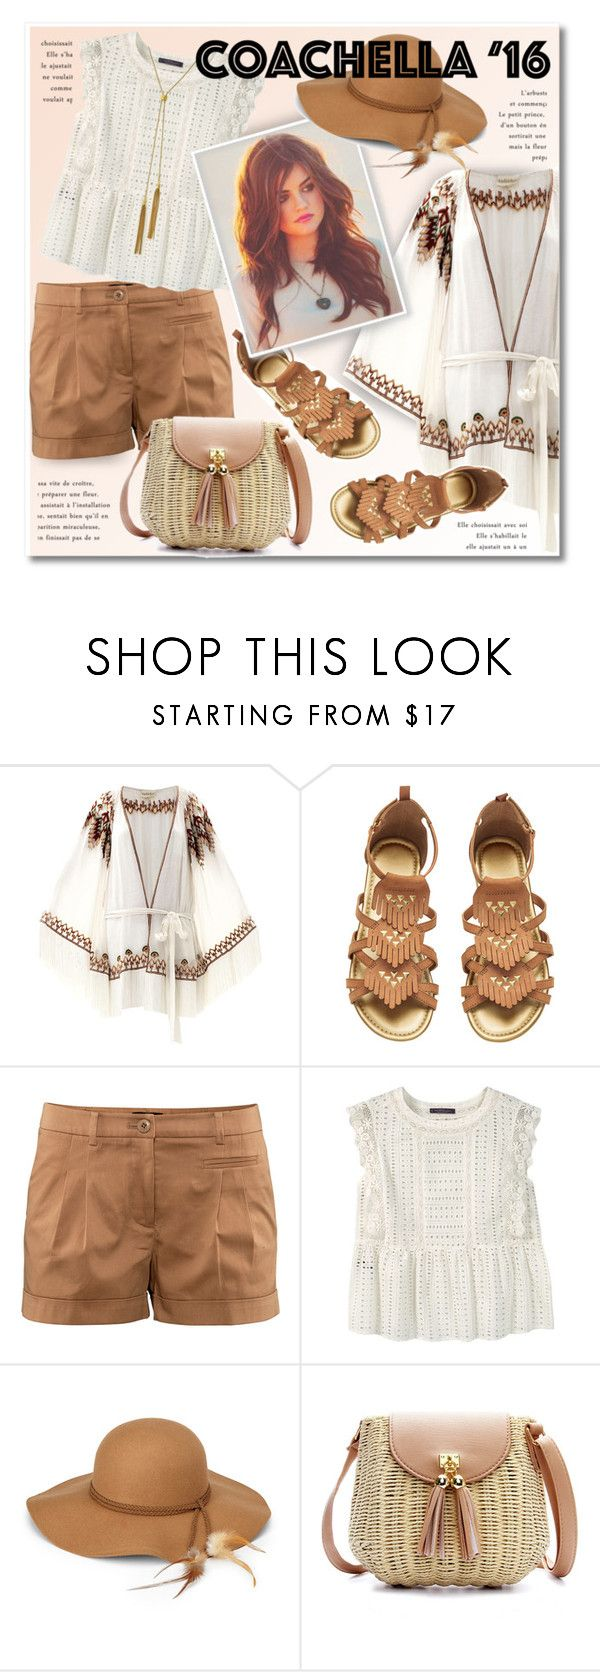 """Coachella 2016"" by petri5 ❤ liked on Polyvore featuring Talitha, H&M, Violeta by Mango, Steve Madden and Vince Camuto"